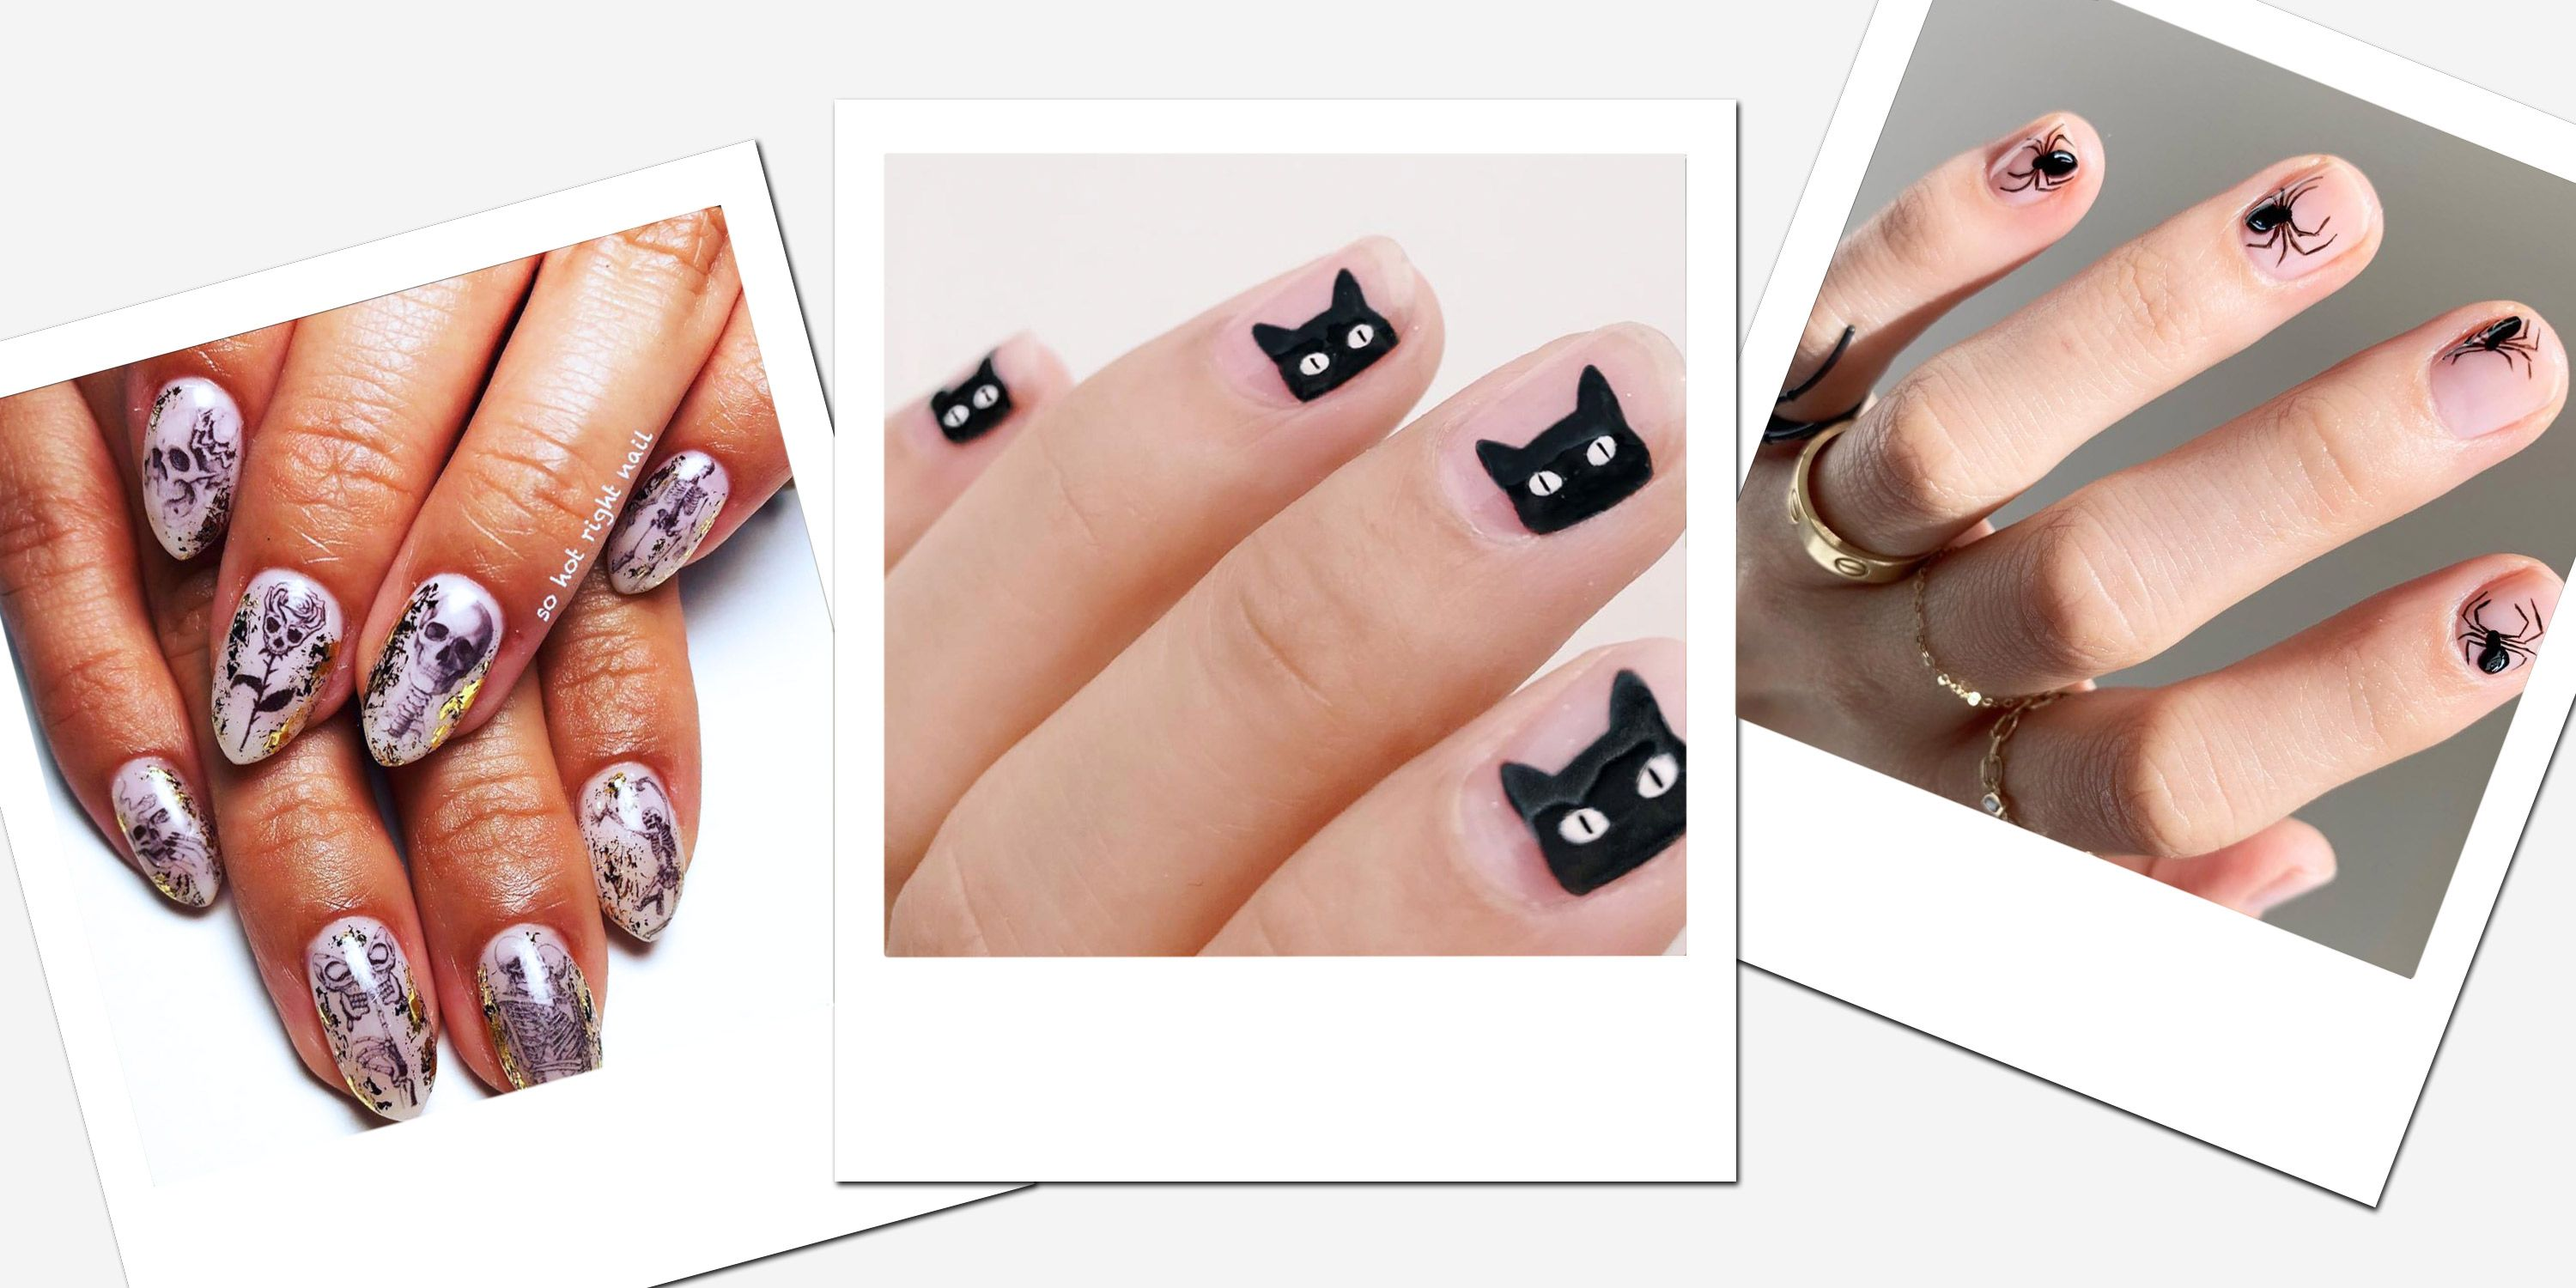 30 Diy Halloween Nail Art Ideas Best Nail Designs And Manicure Inspiration For Halloween